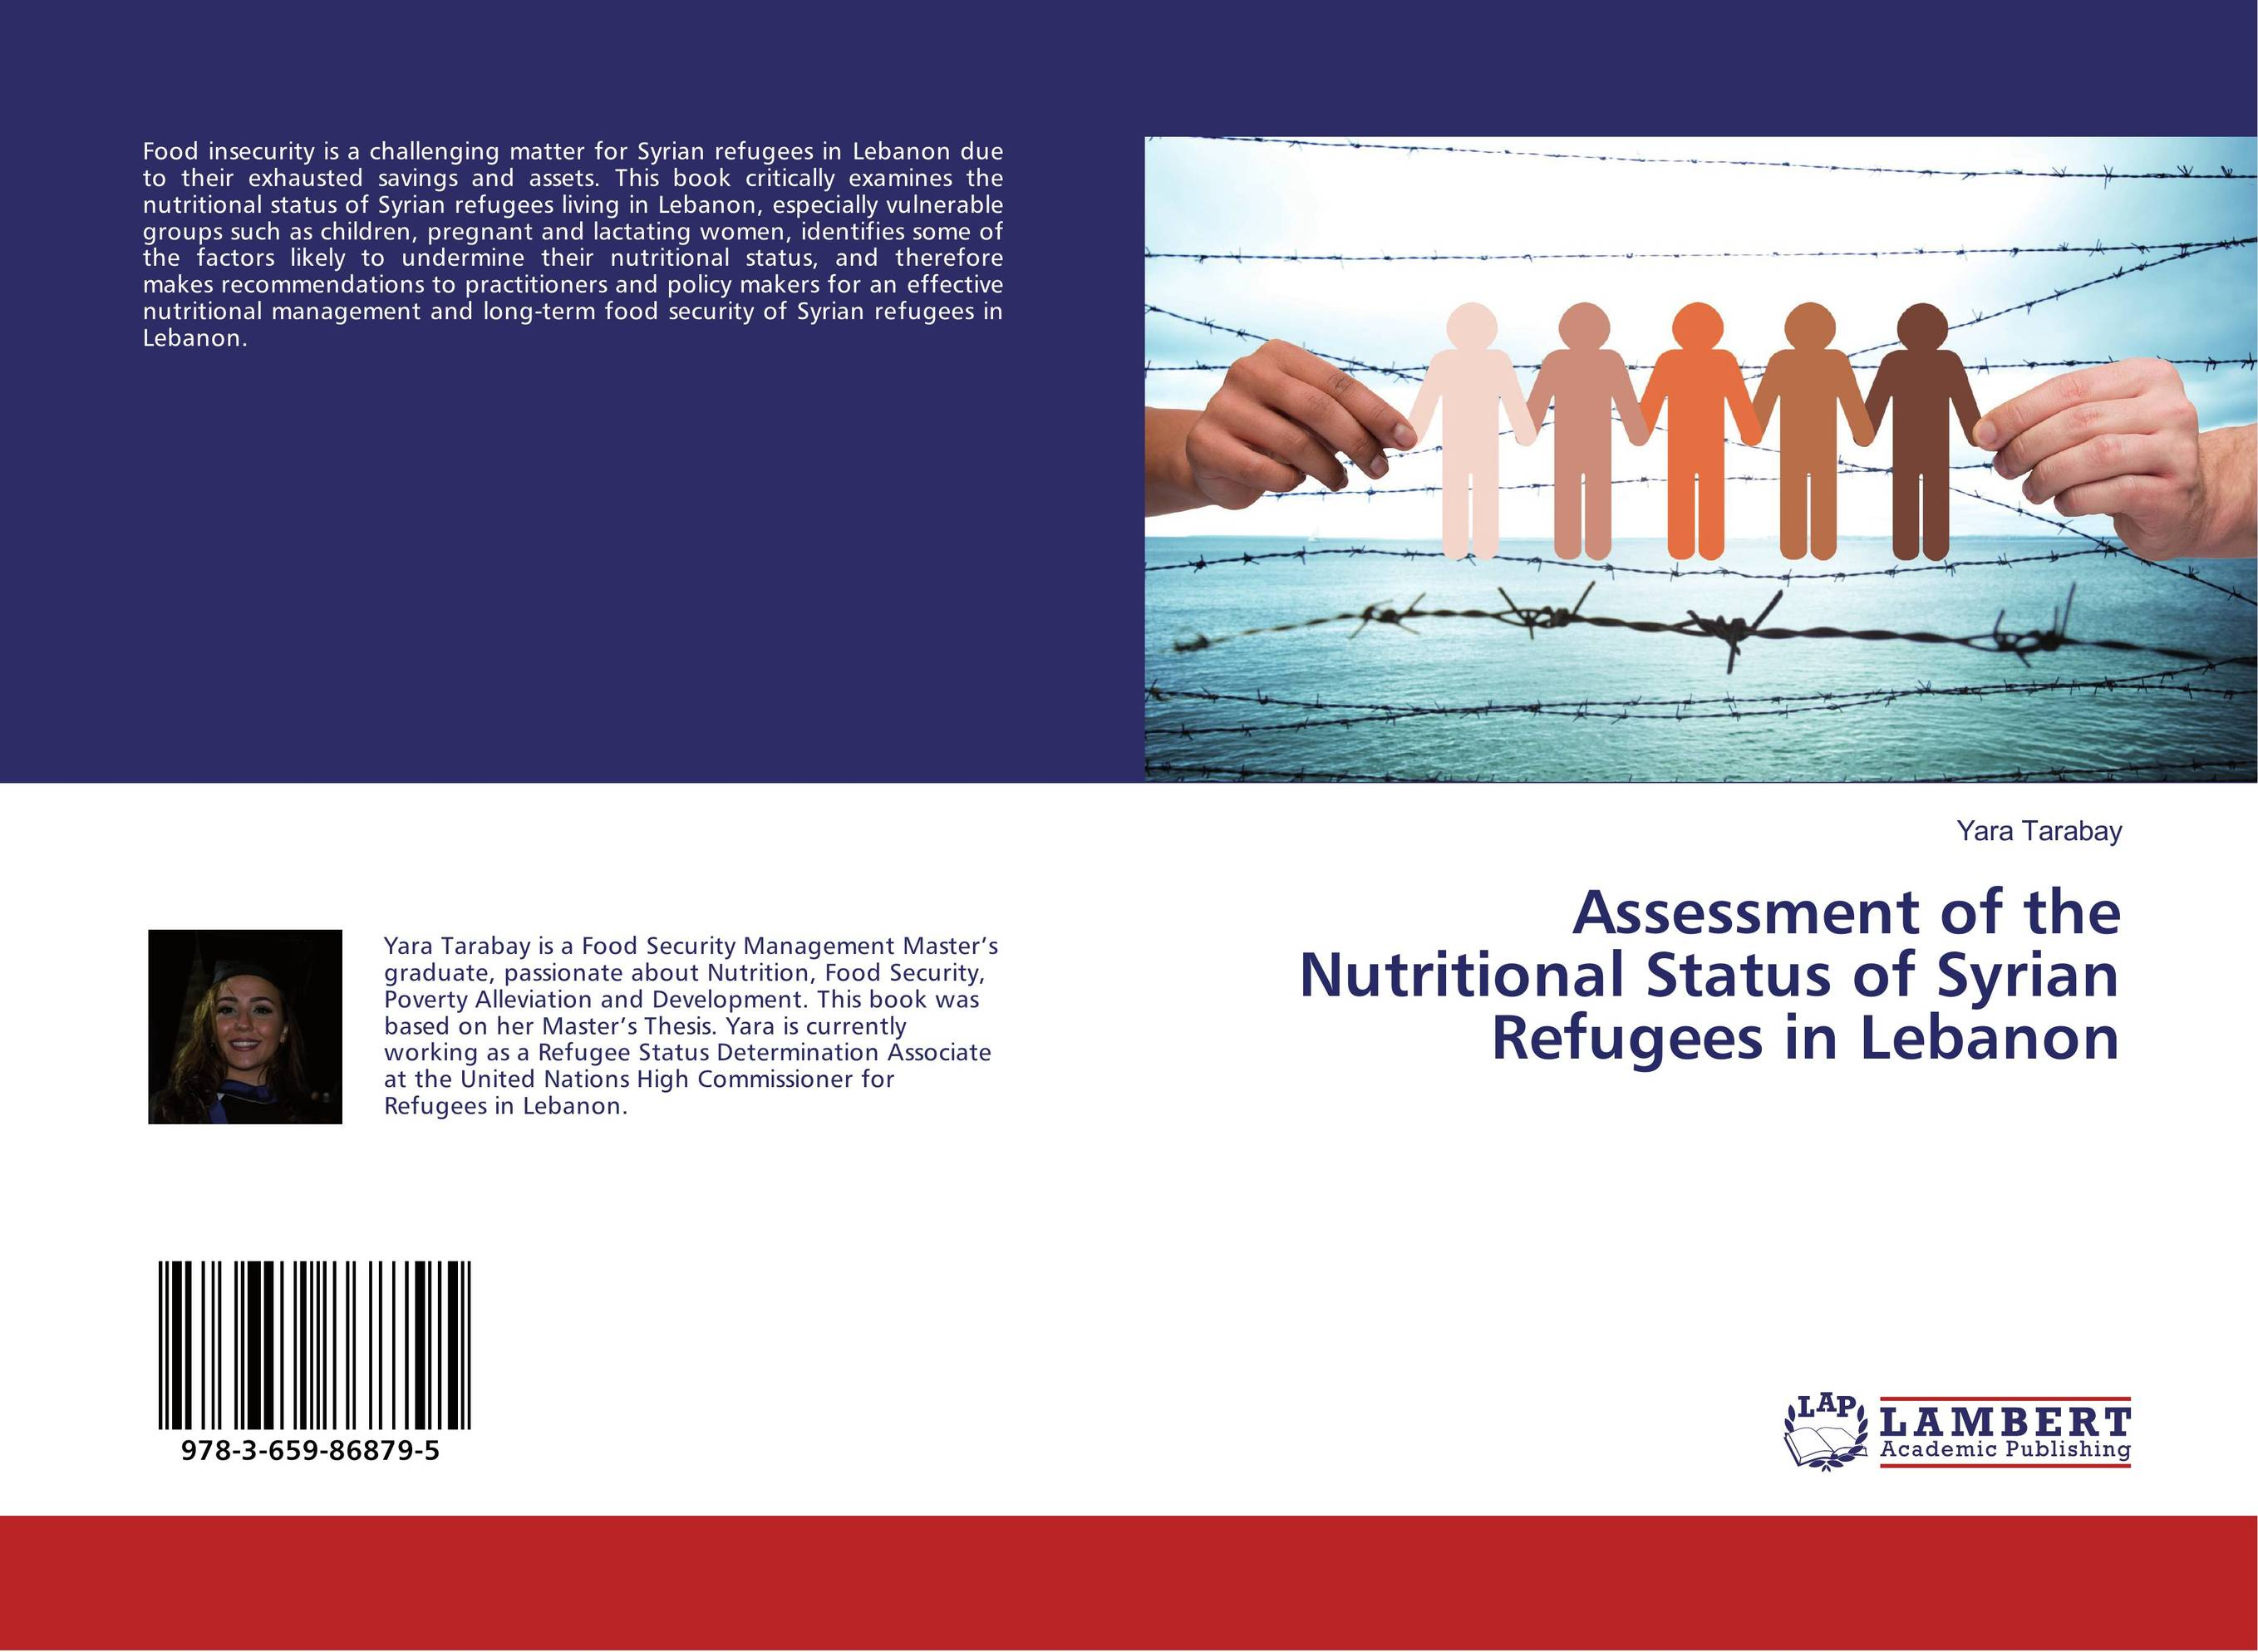 Assessment of the Nutritional Status of Syrian Refugees in Lebanon edna omweno factors influencing child nutritional status in kenya